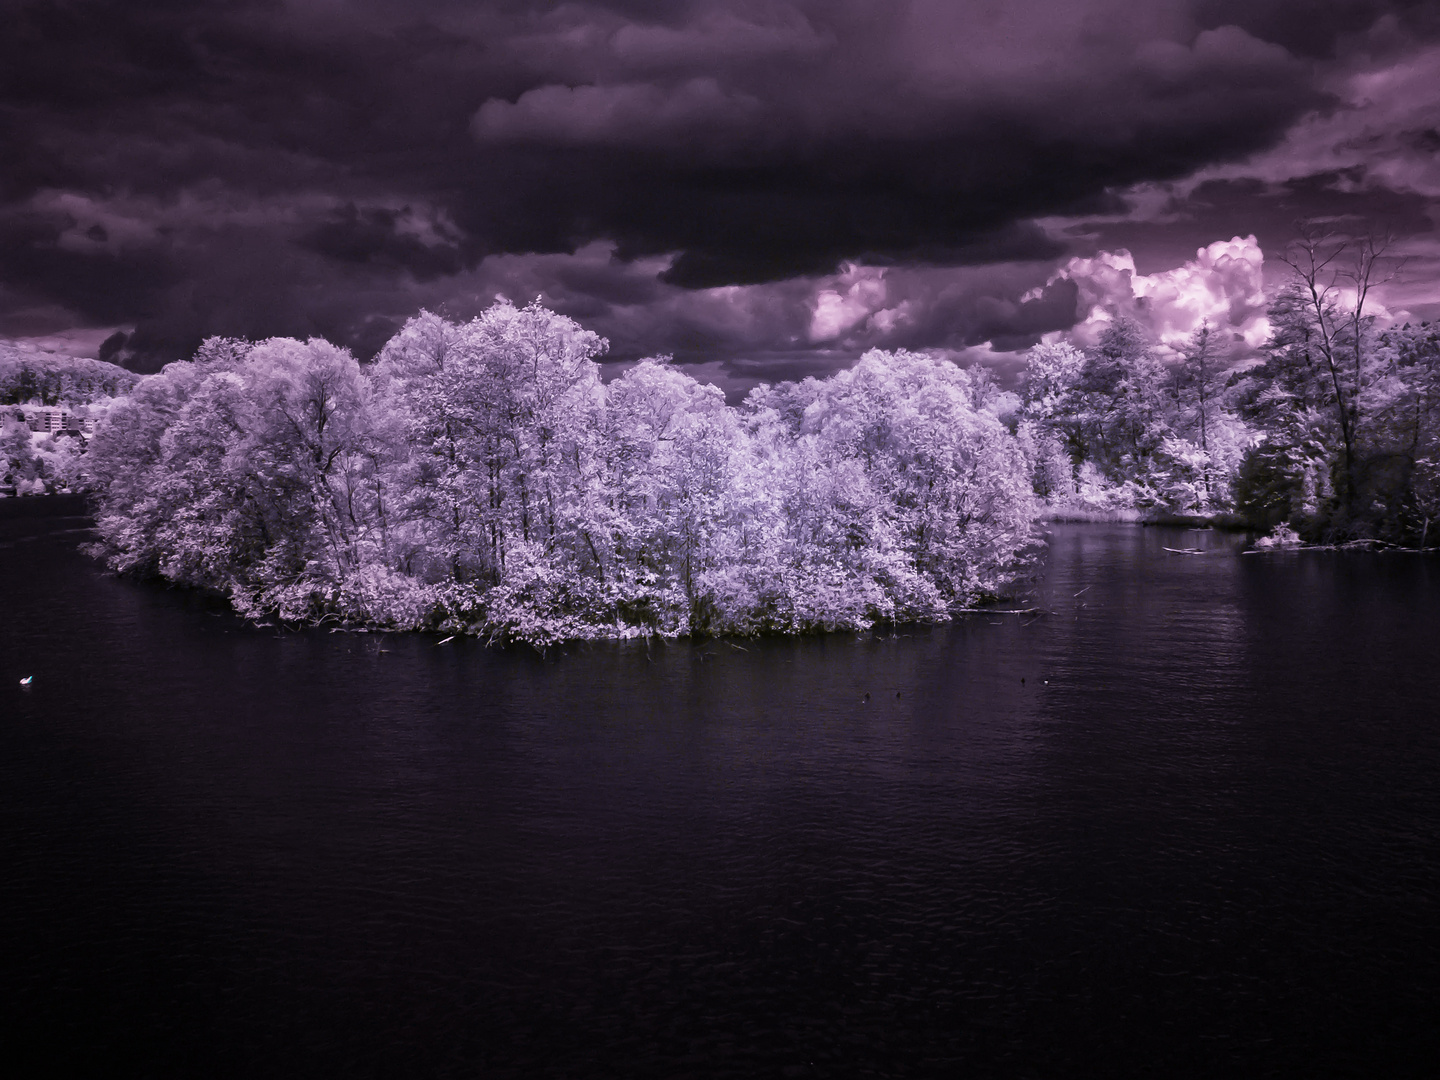 Lake island infrared in Purpel